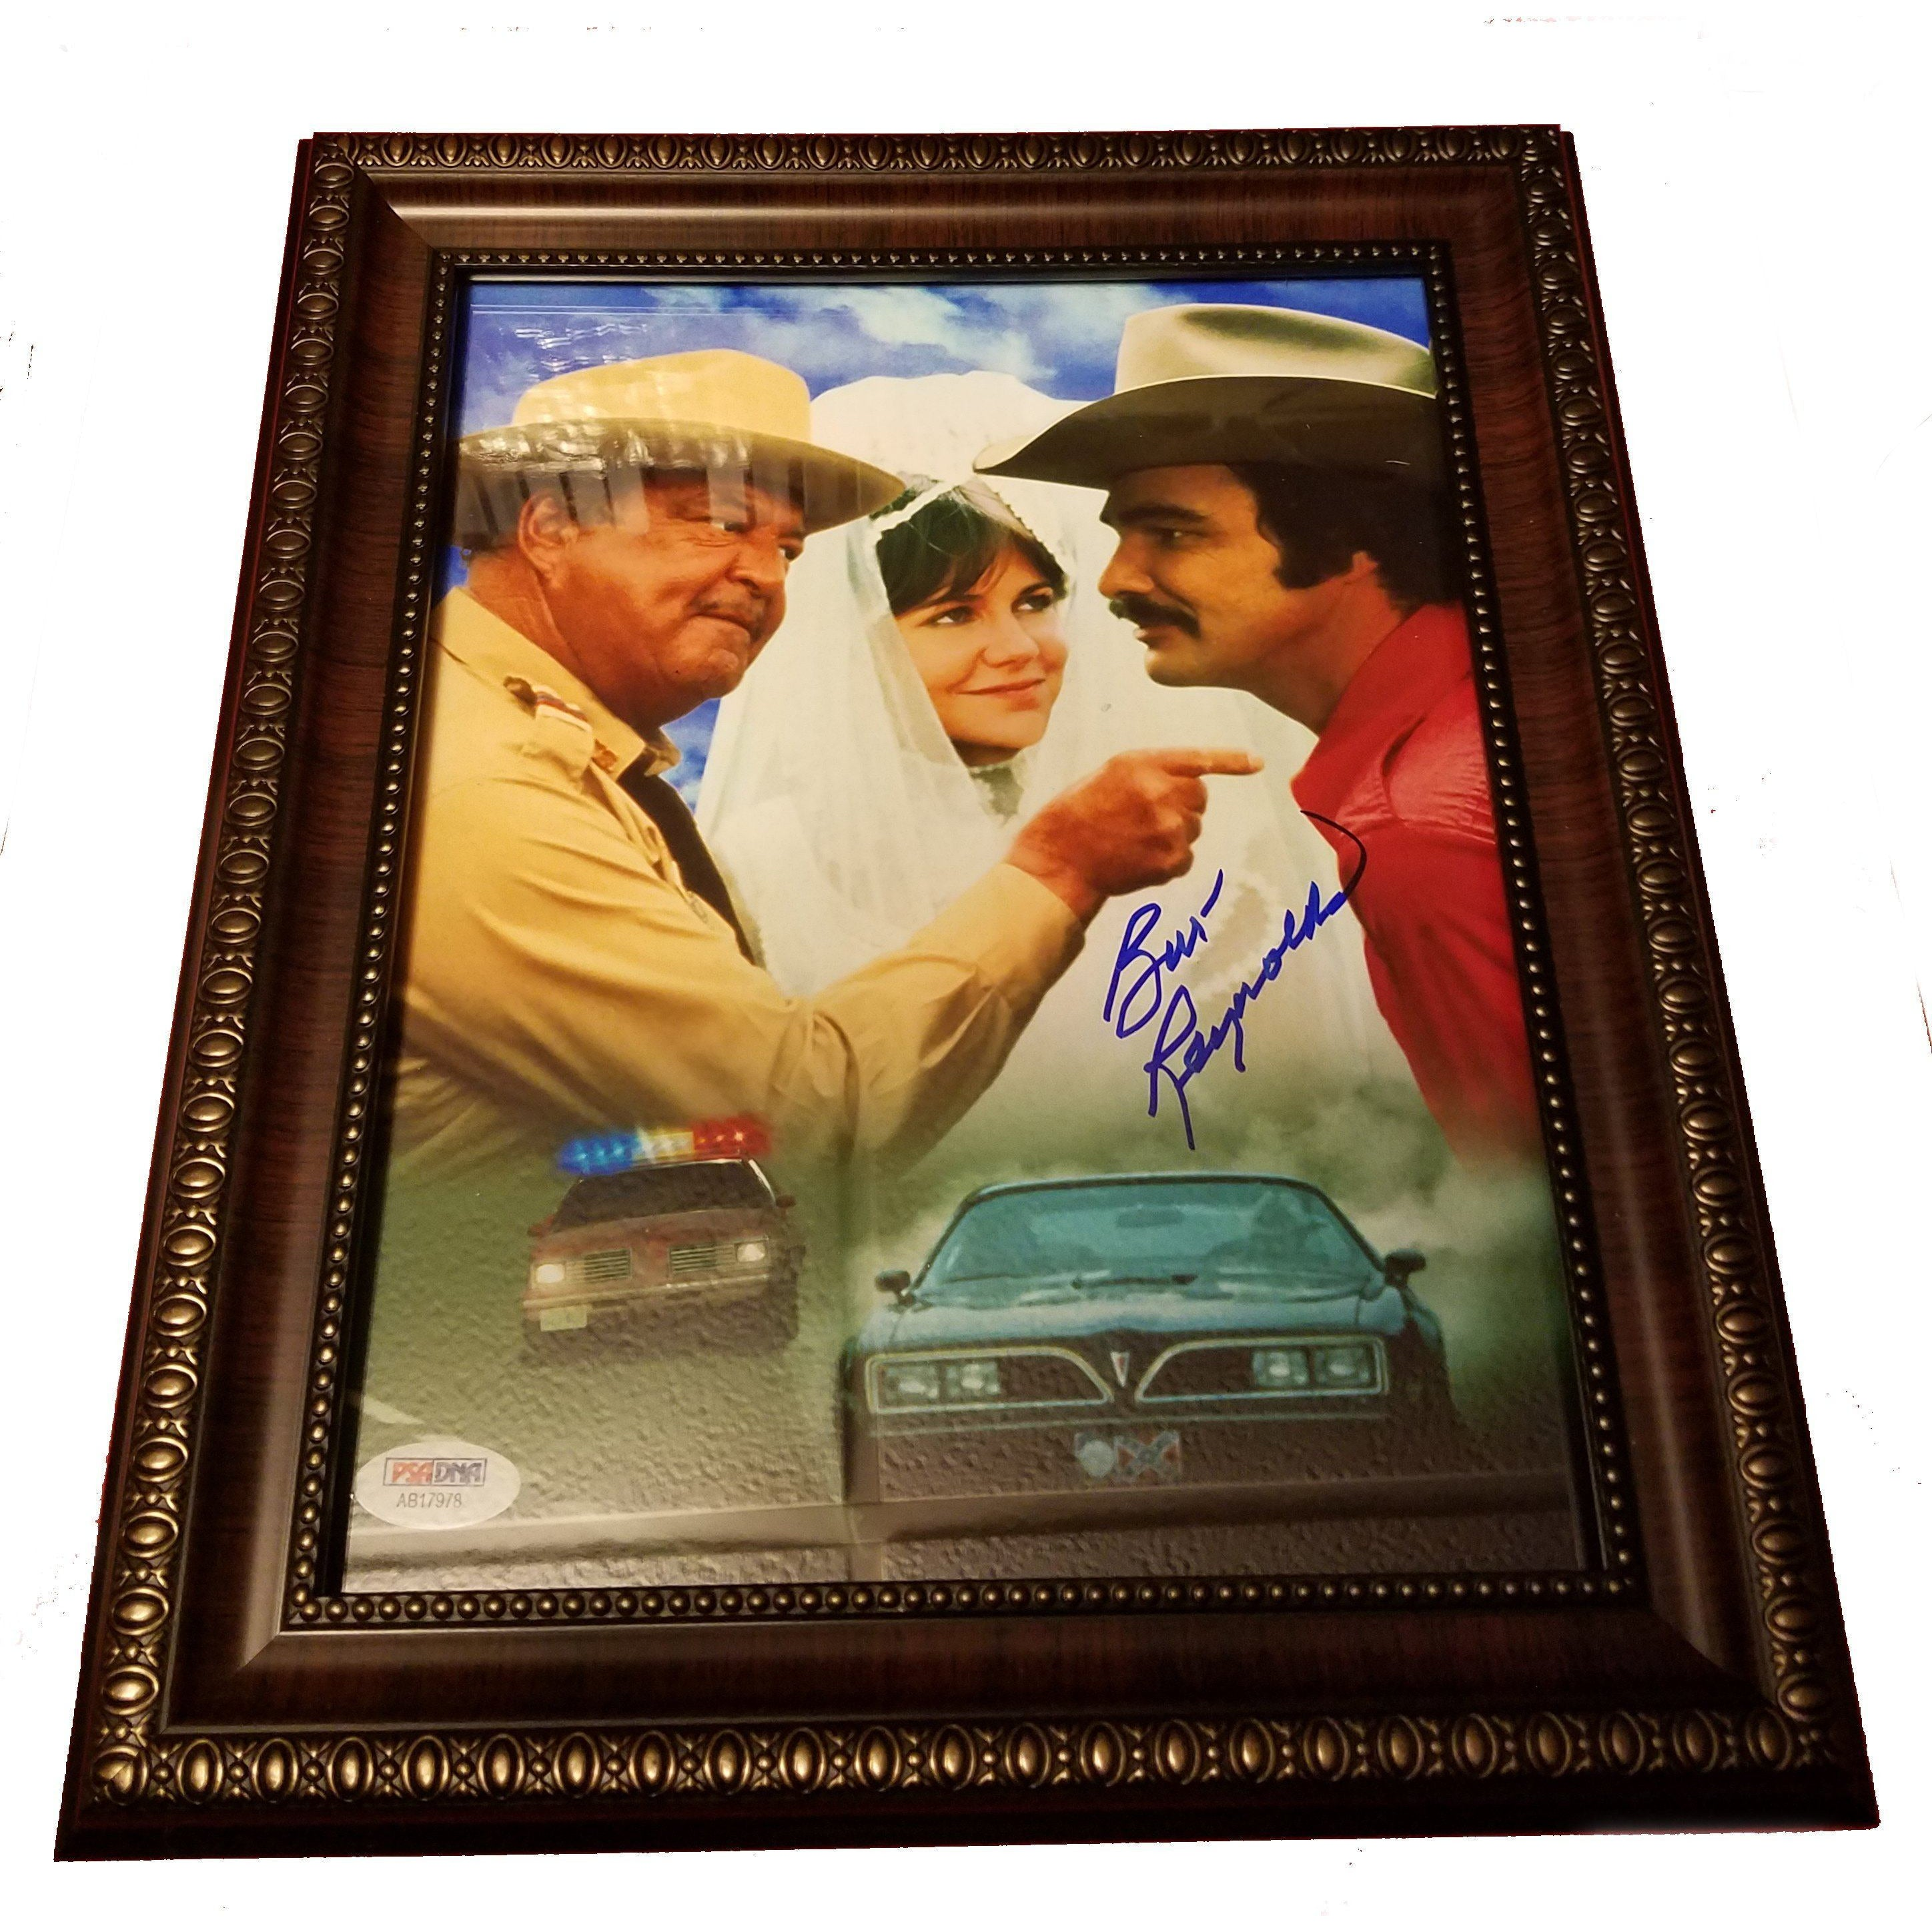 Burt Reynolds Autograph 8x10 with COA Smokey & The Bandit Rustic Frame